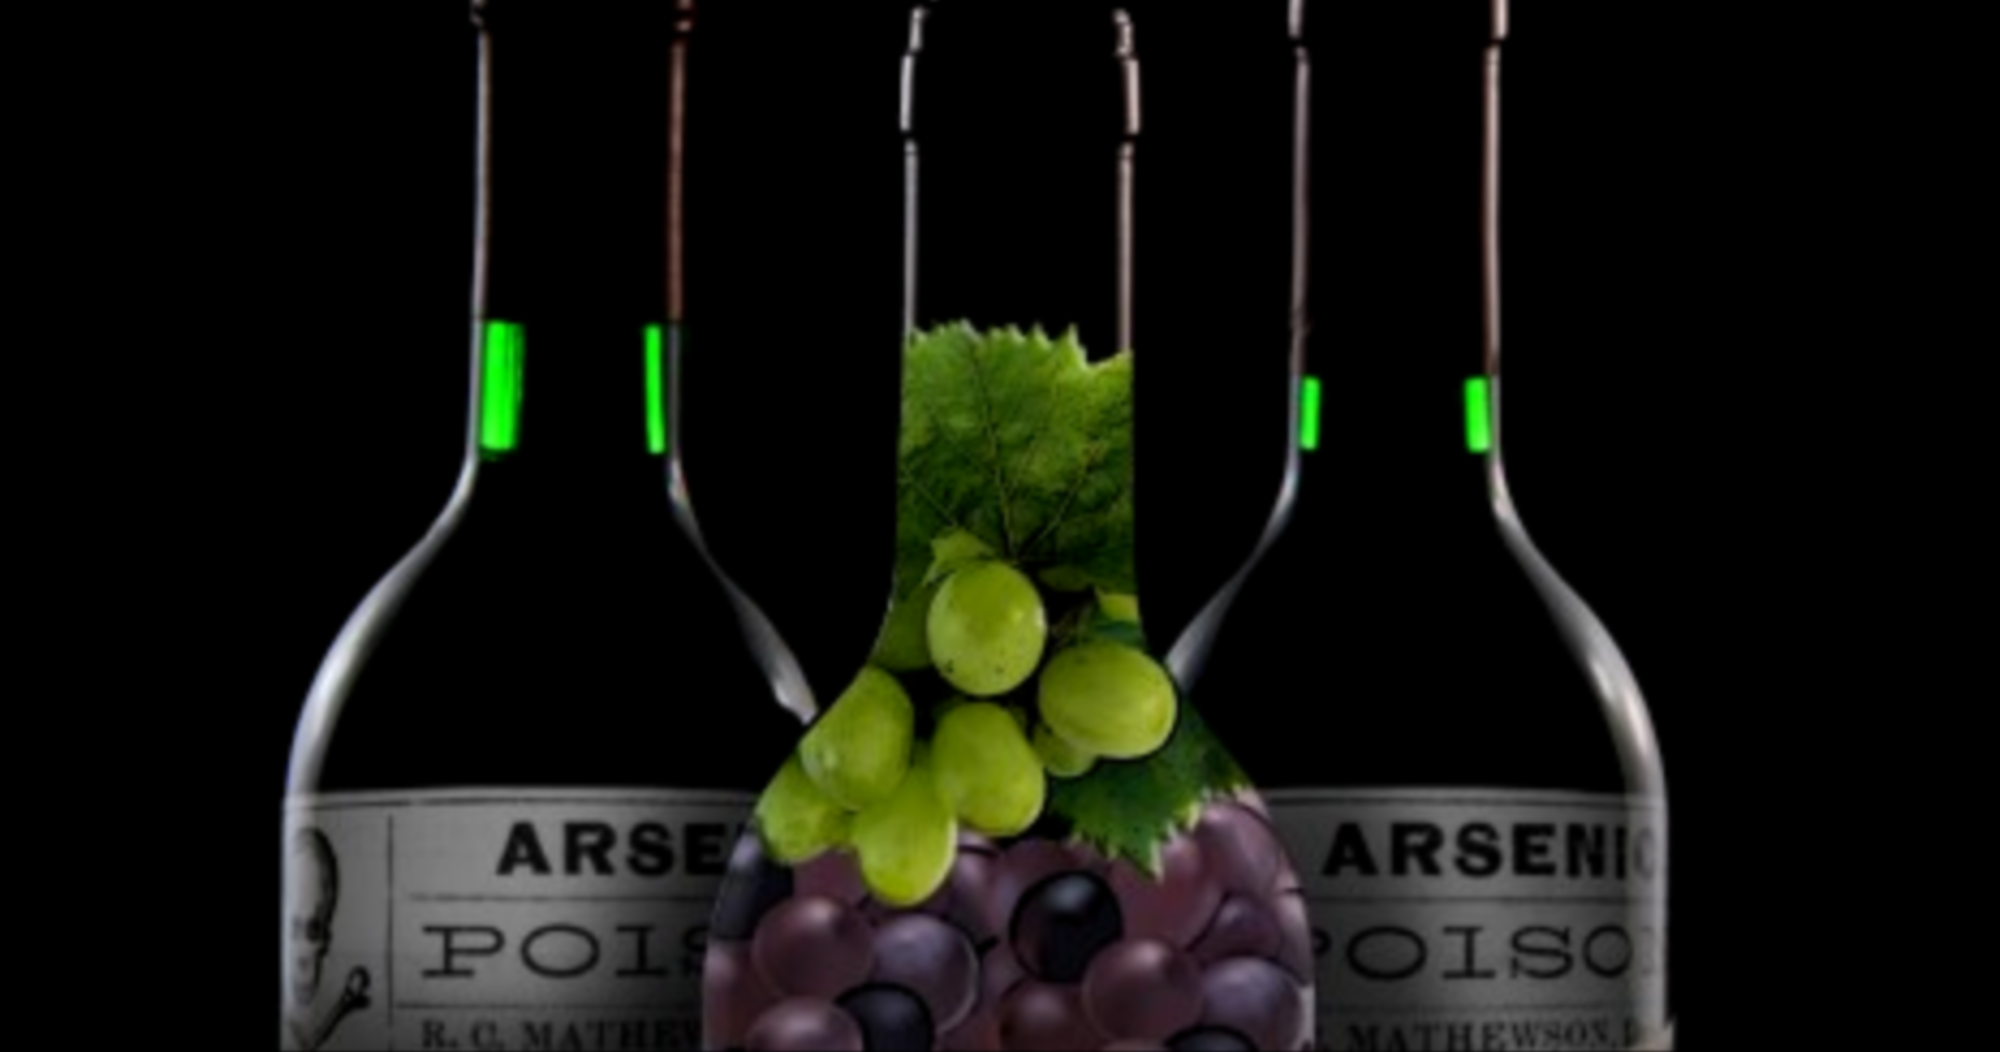 What is Arsenic? Should Consumers Be Concerned About Arsenic in Wine? |